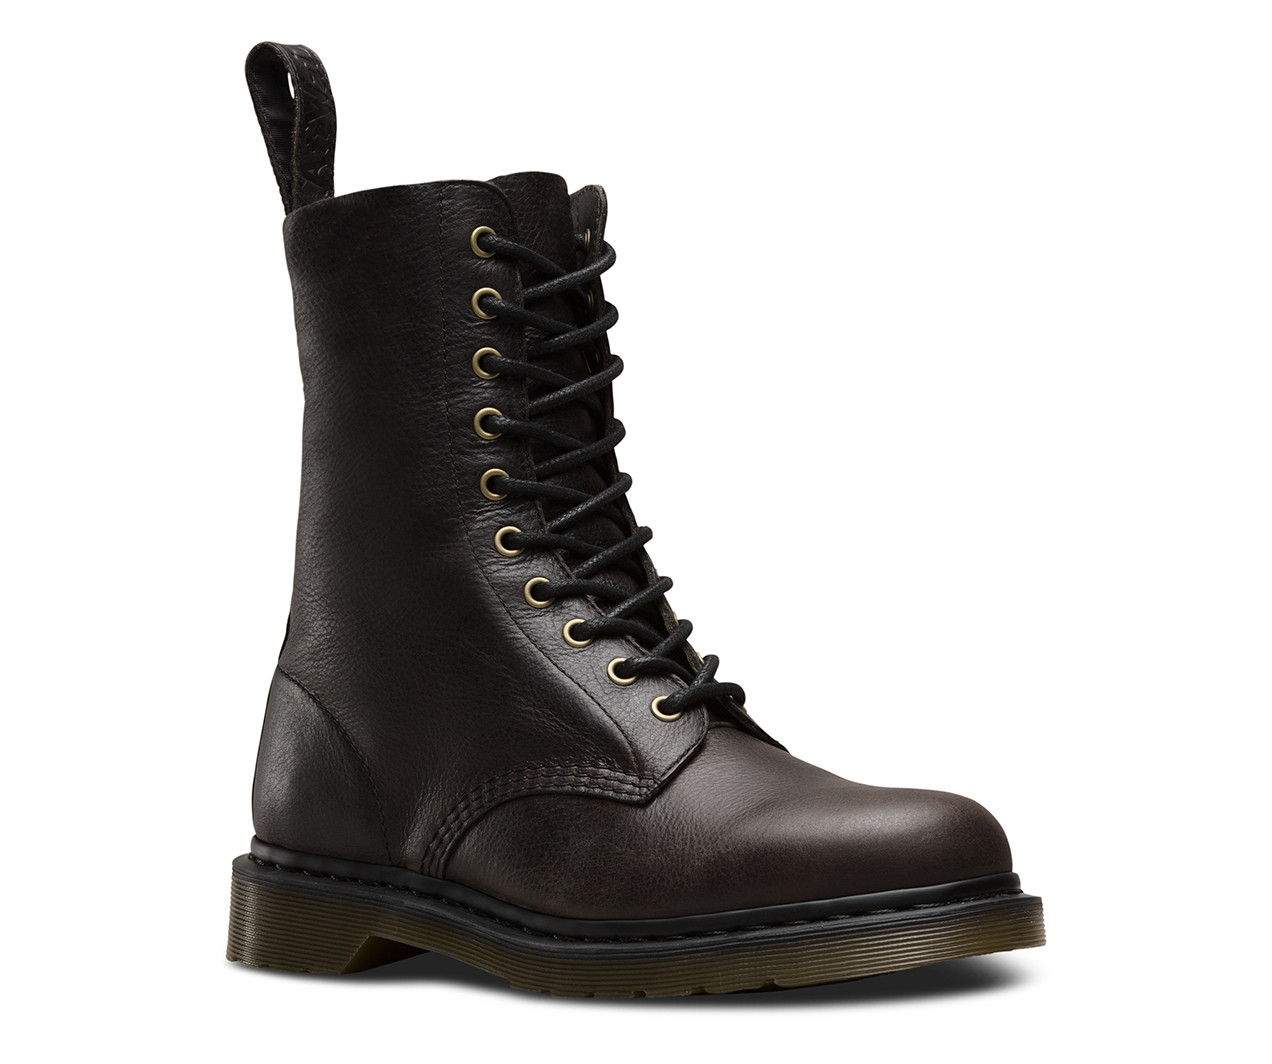 Chaussures Dr. Martens 1490 42 marron or2LfC6A